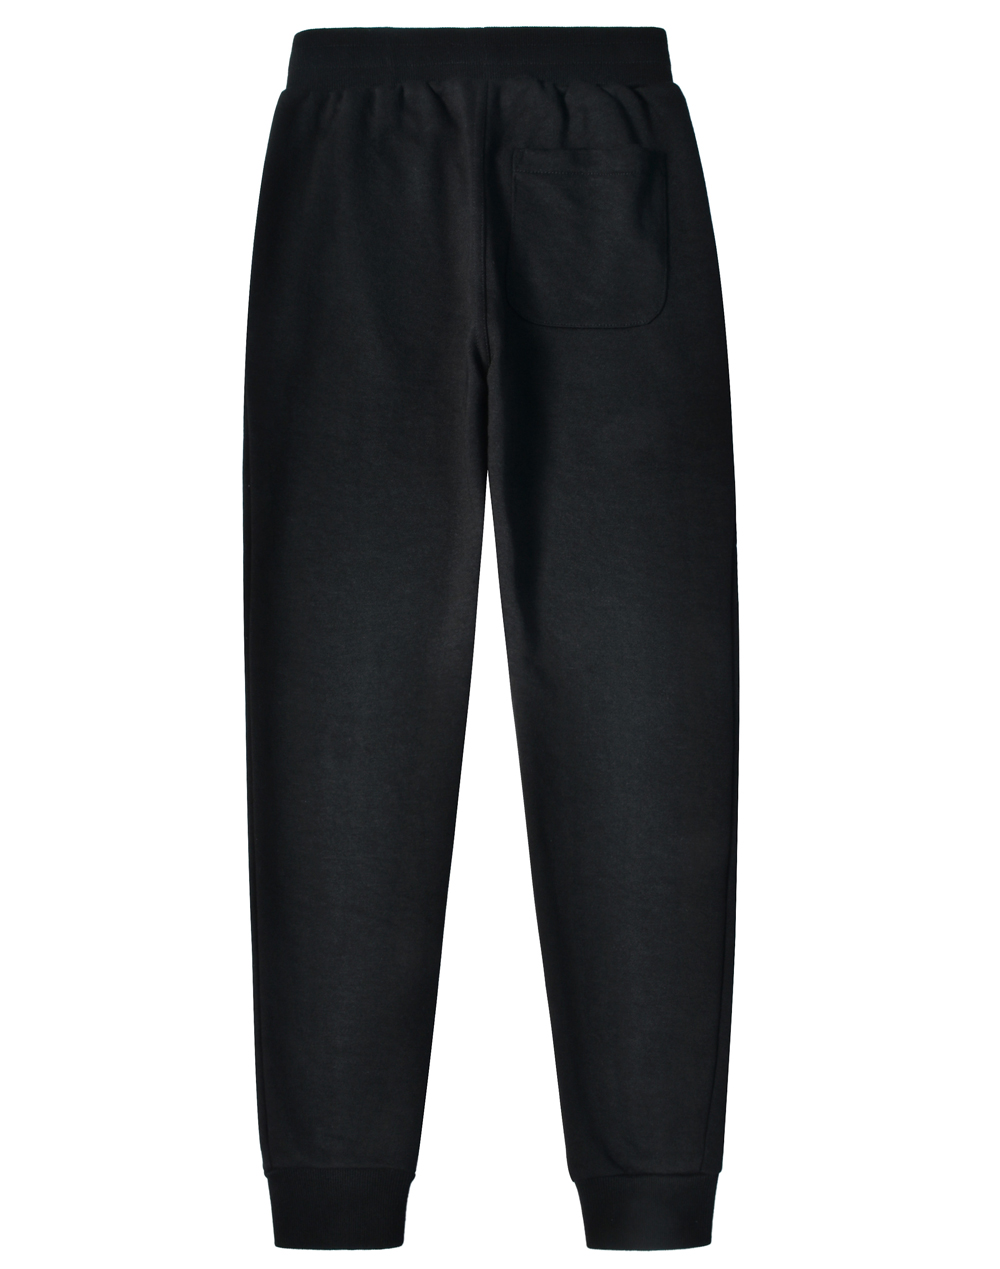 TP25K KIDS FRENCH TERRY TRACK PANTS